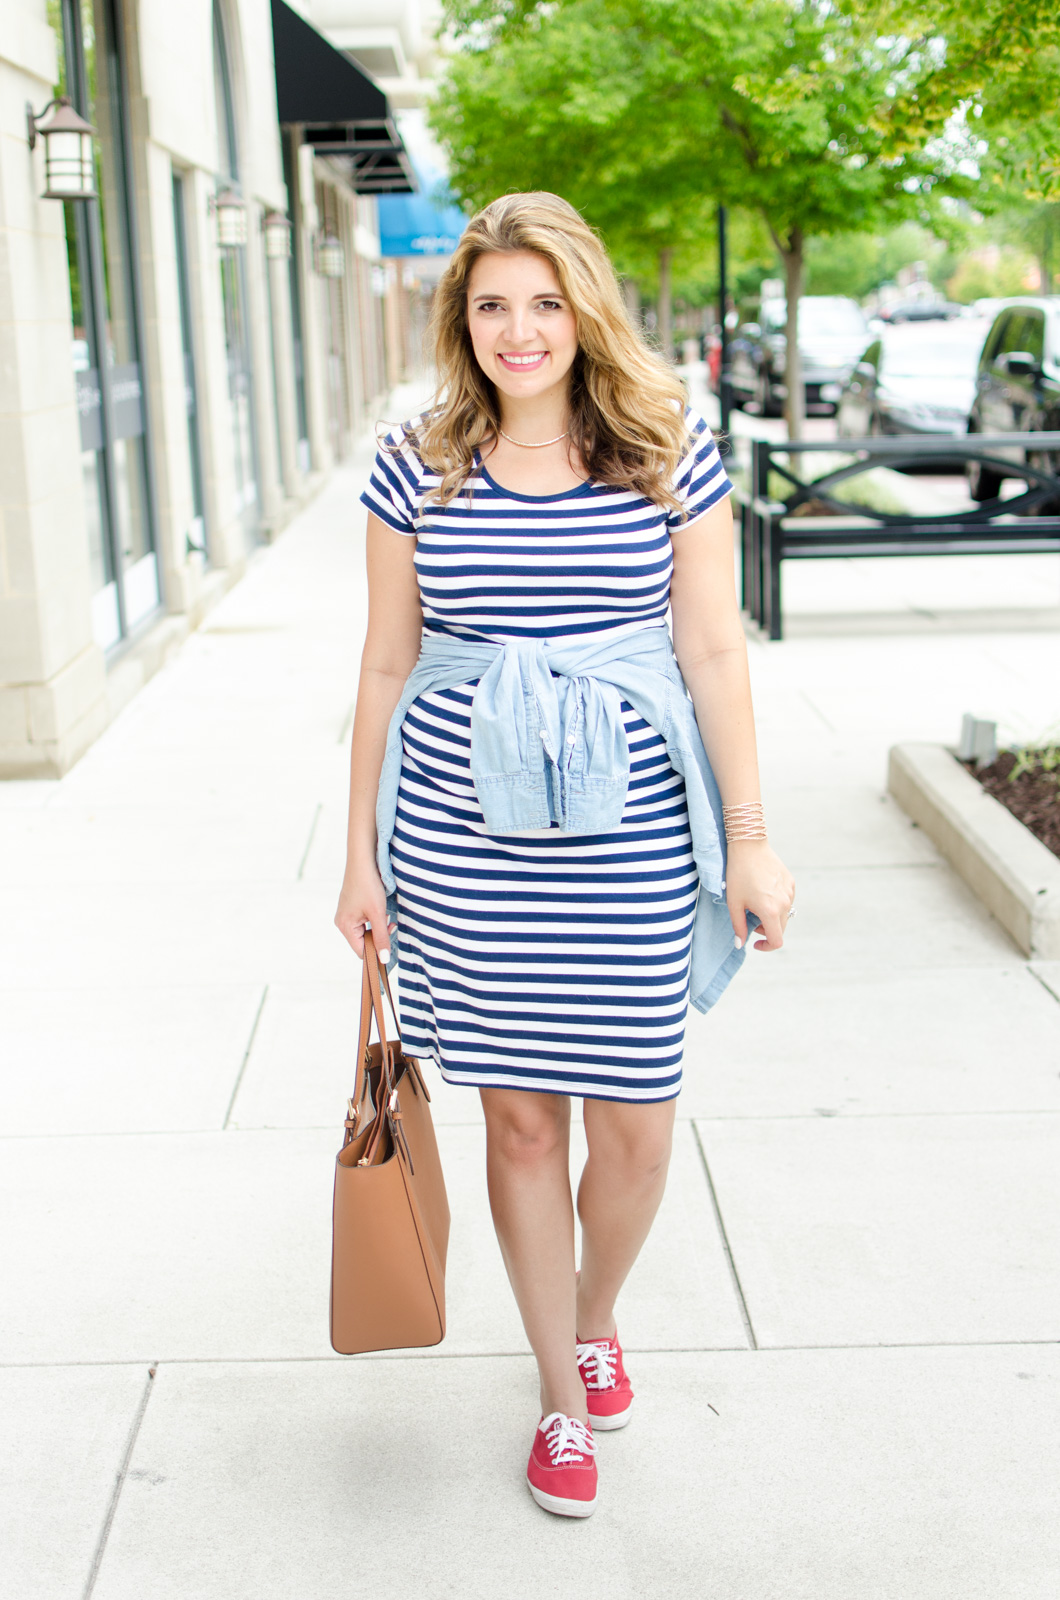 all american maternity - 4th of july maternity outfit | For more cute summer pregnancy outfits, head to bylaurenm.com